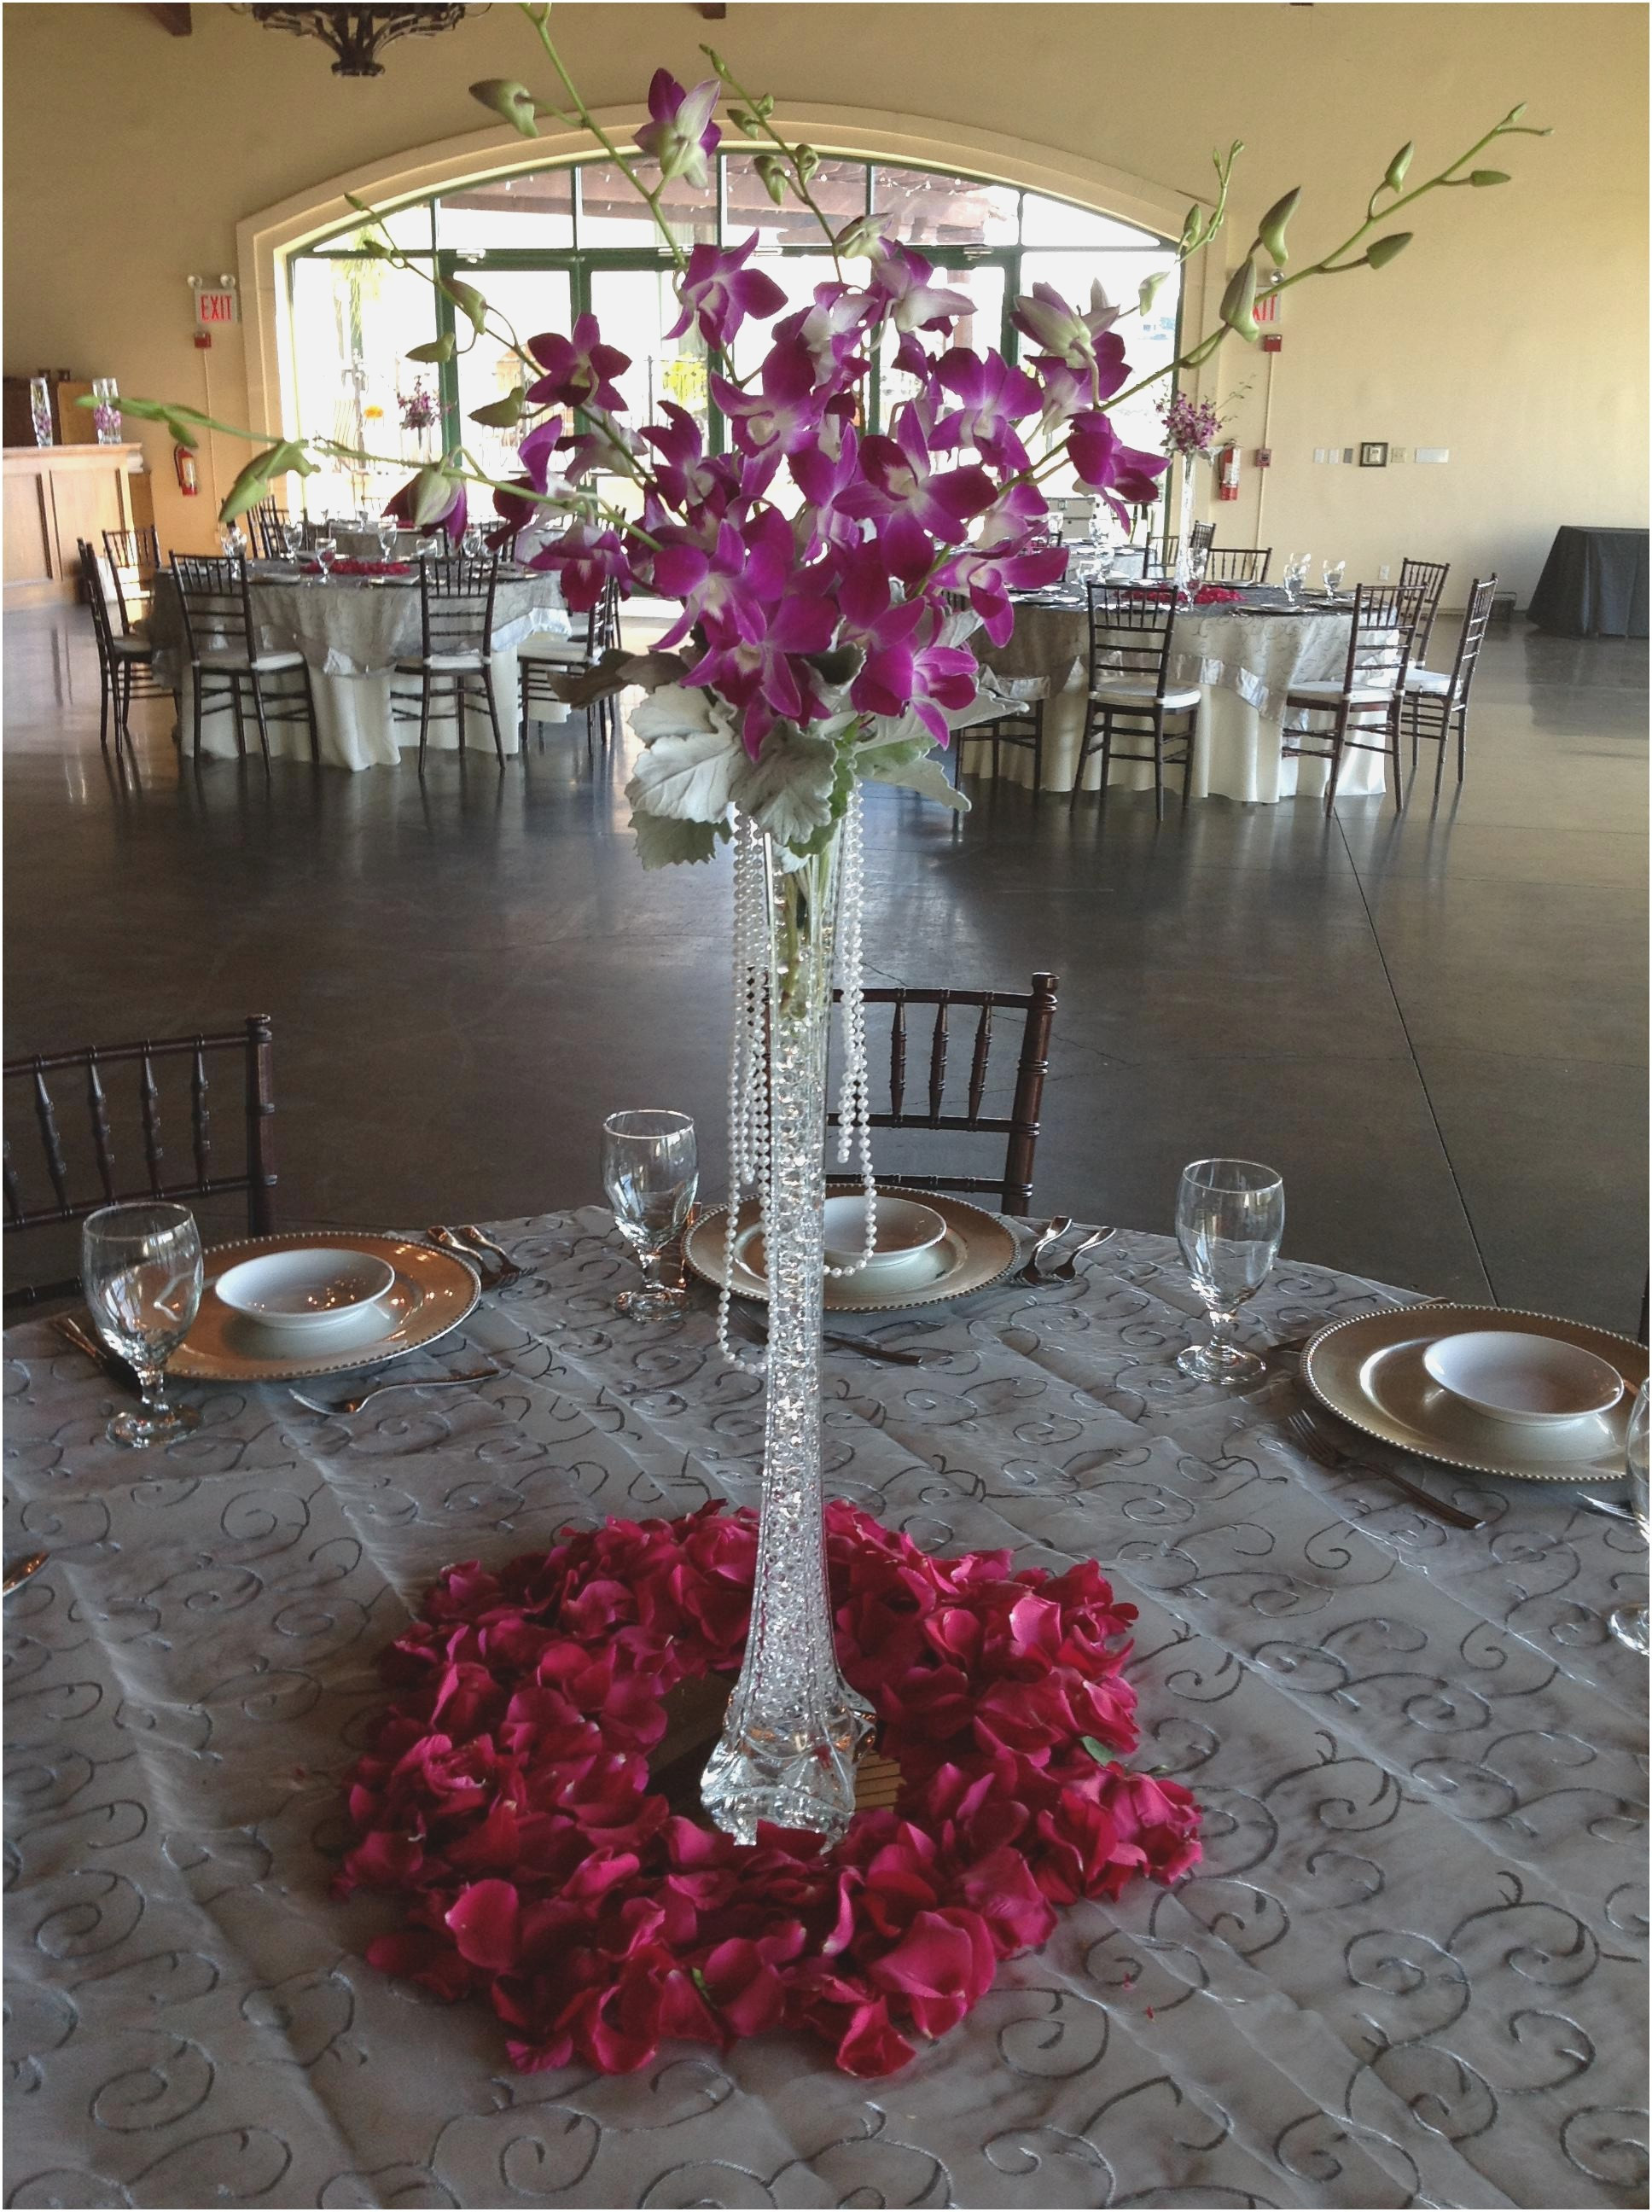 16 attractive Wedding Vases for Sale 2021 free download wedding vases for sale of 49 new pictures for living room pictures living room decor ideas regarding candy for wedding elegant living room vases wedding inspirational h vases candy vase i 0d